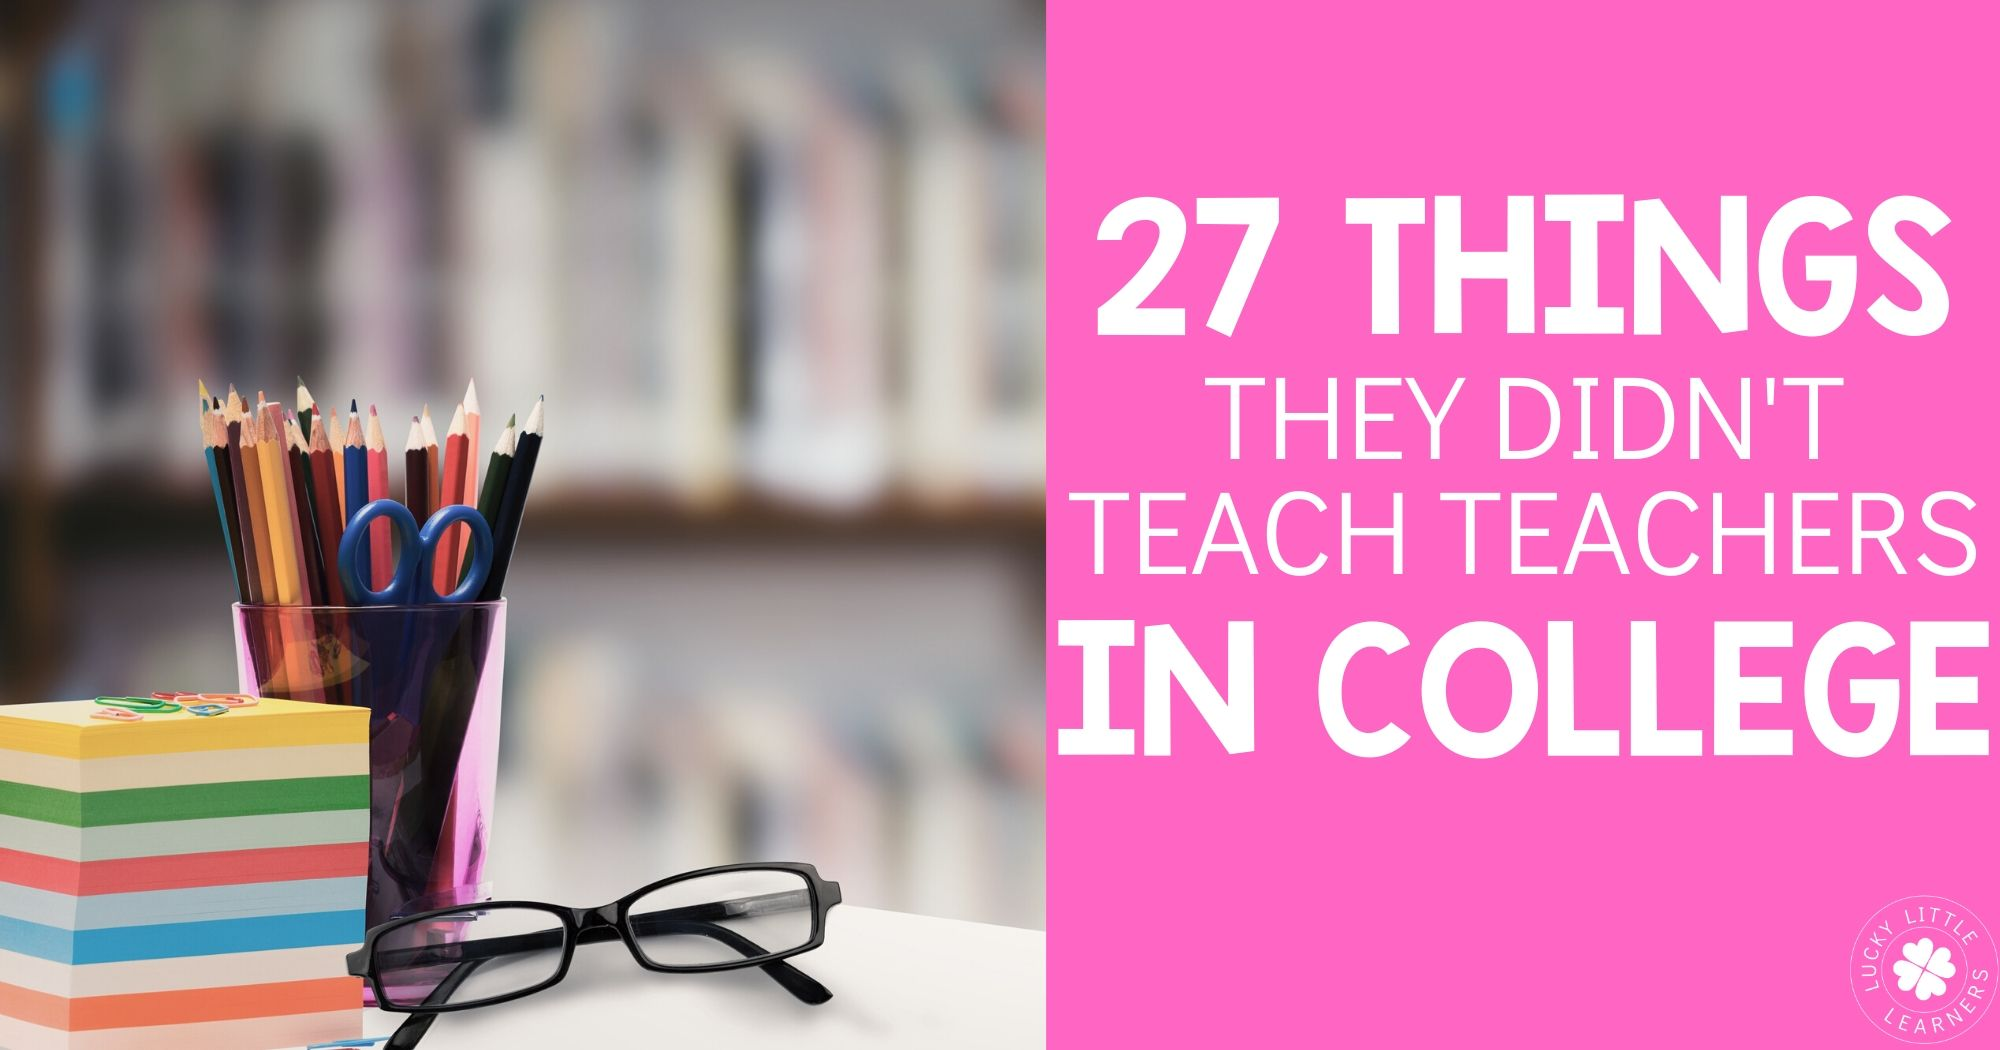 27 Things They Didn't Teach Teachers In College